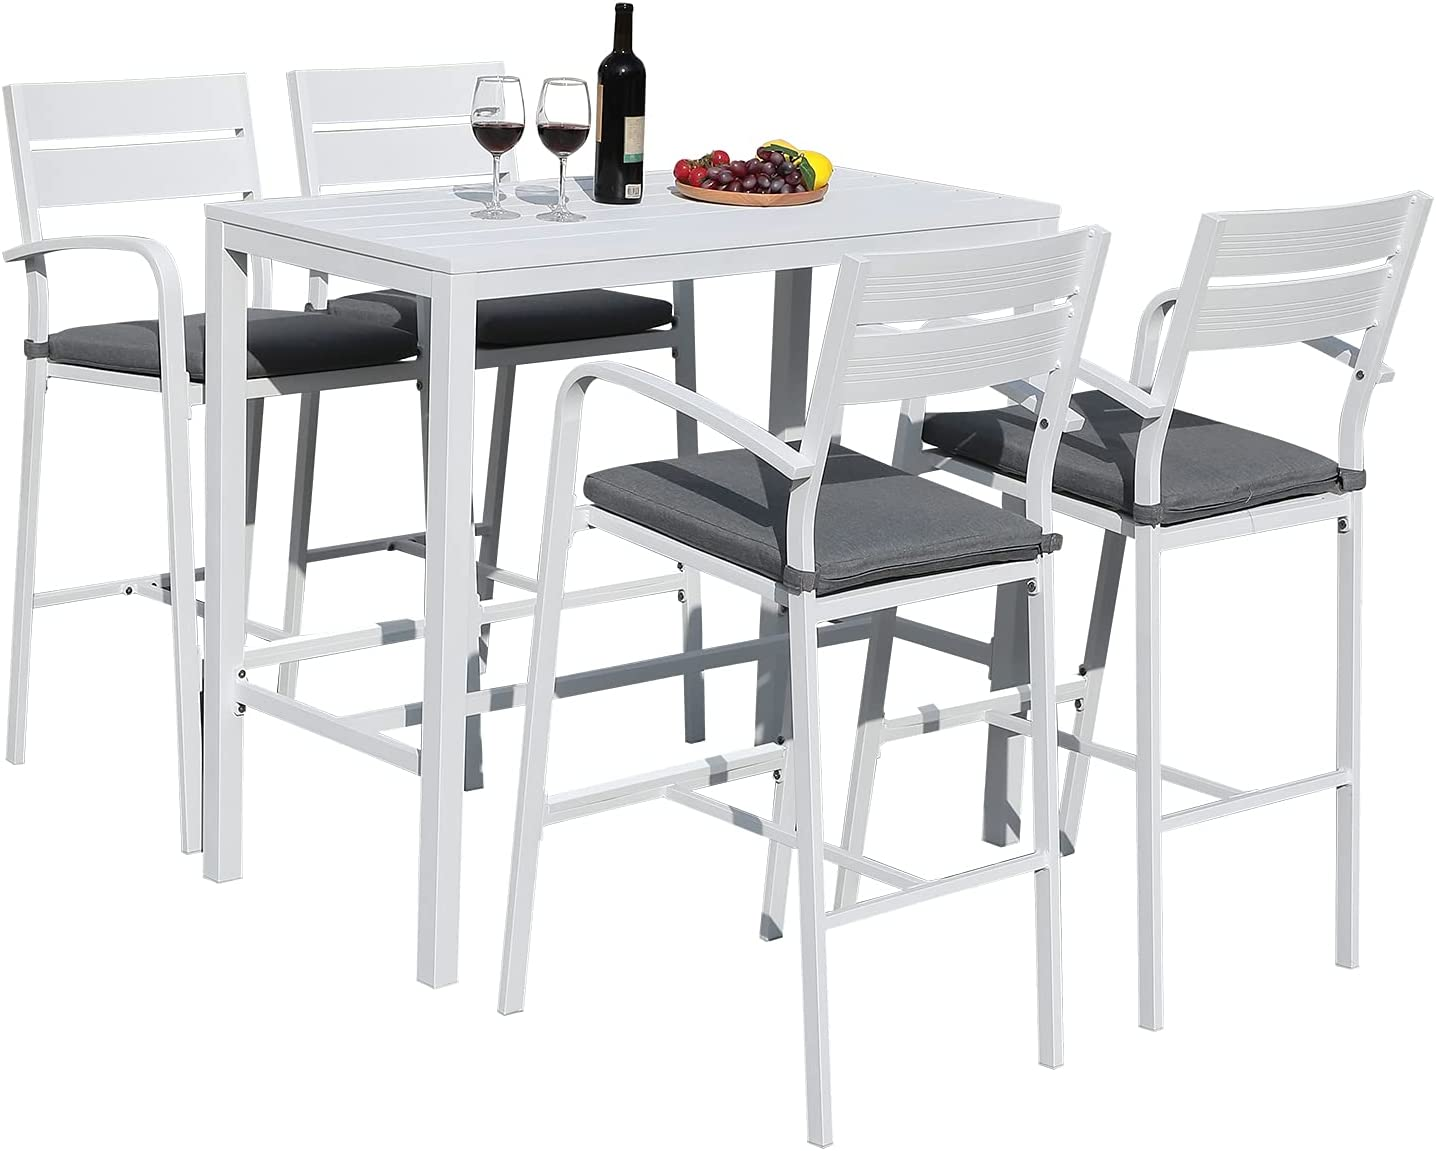 Soleil Jardin Outdoor Aluminum 5-Piece Bar Set, Dining Bistro Pub Set, Patio Bar Height Chairs with Cushion & Slatted High Top Table for Backyard Garden Pool, White